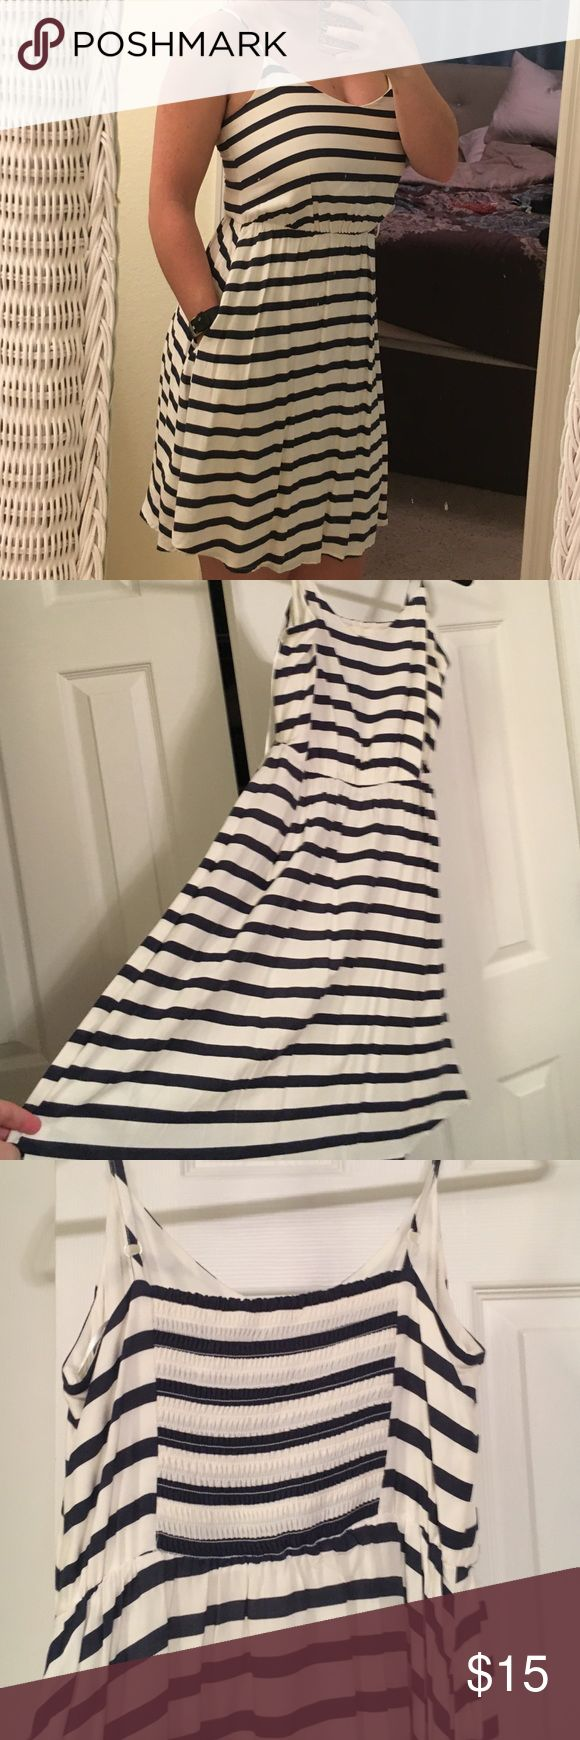 Adorable nautical sundress from LC Lauren Conrad Perfect summer dress! Nautical look with navy and white stripes. Never worn because I bought it not realizing it was too tight in the top. Straps are adjustable and the dress has pockets, both of which i LOVE! The dress is 100% rayon for a nice lightweight flown feel with a polyester lining. Open to offers!! LC Lauren Conrad Dresses